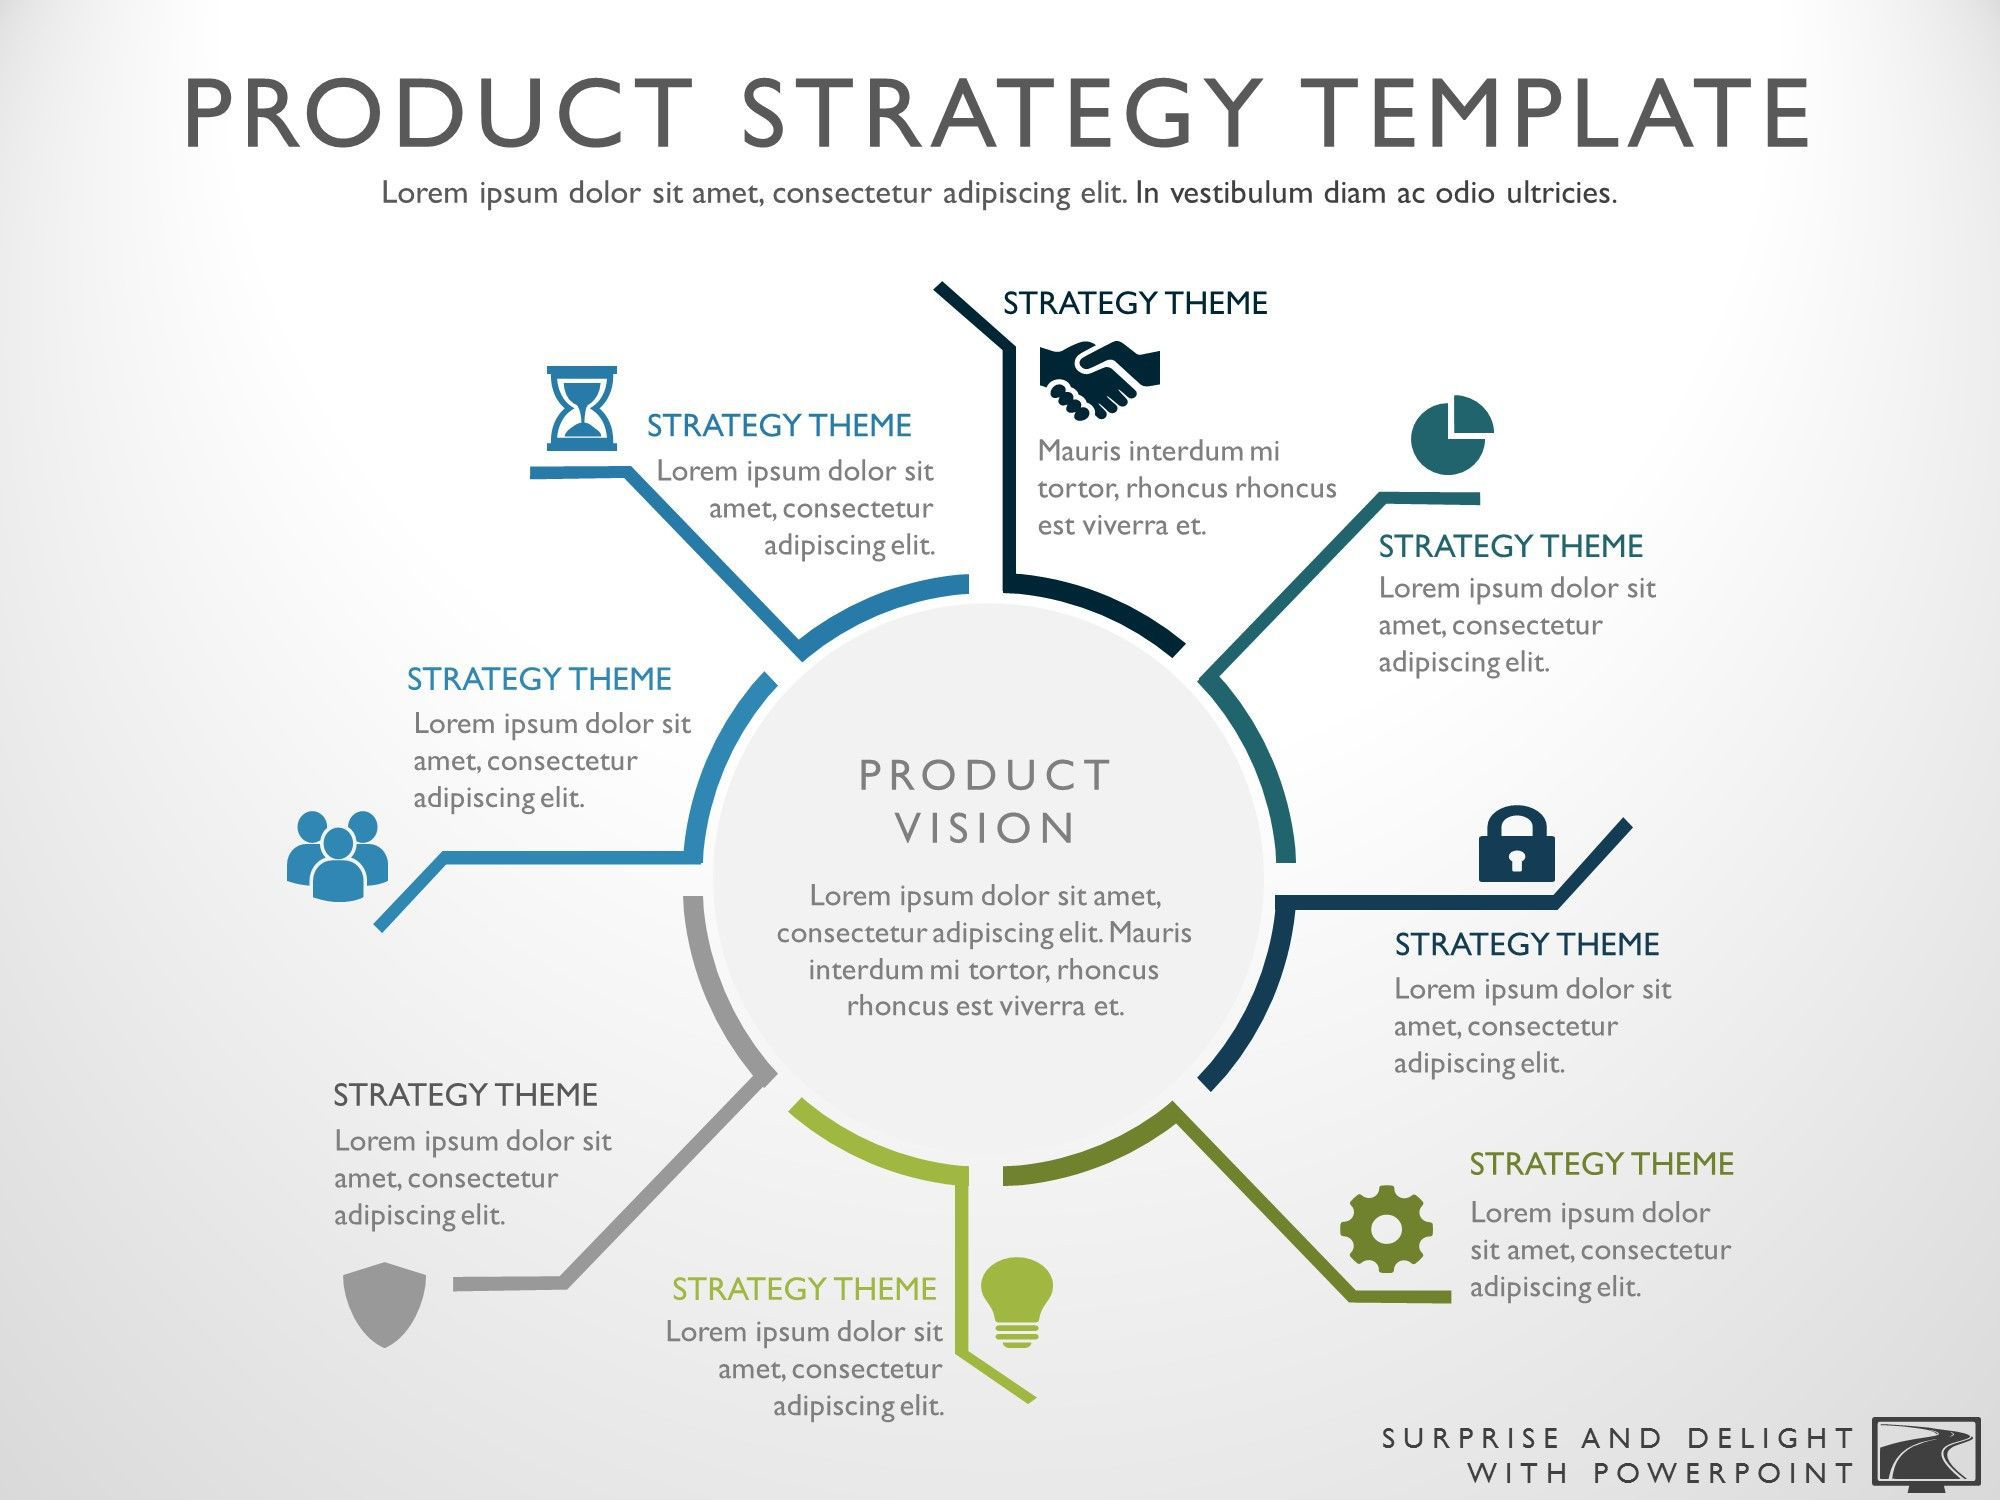 001 Archaicawful Free Product Launch Plan Template Ppt Image Full